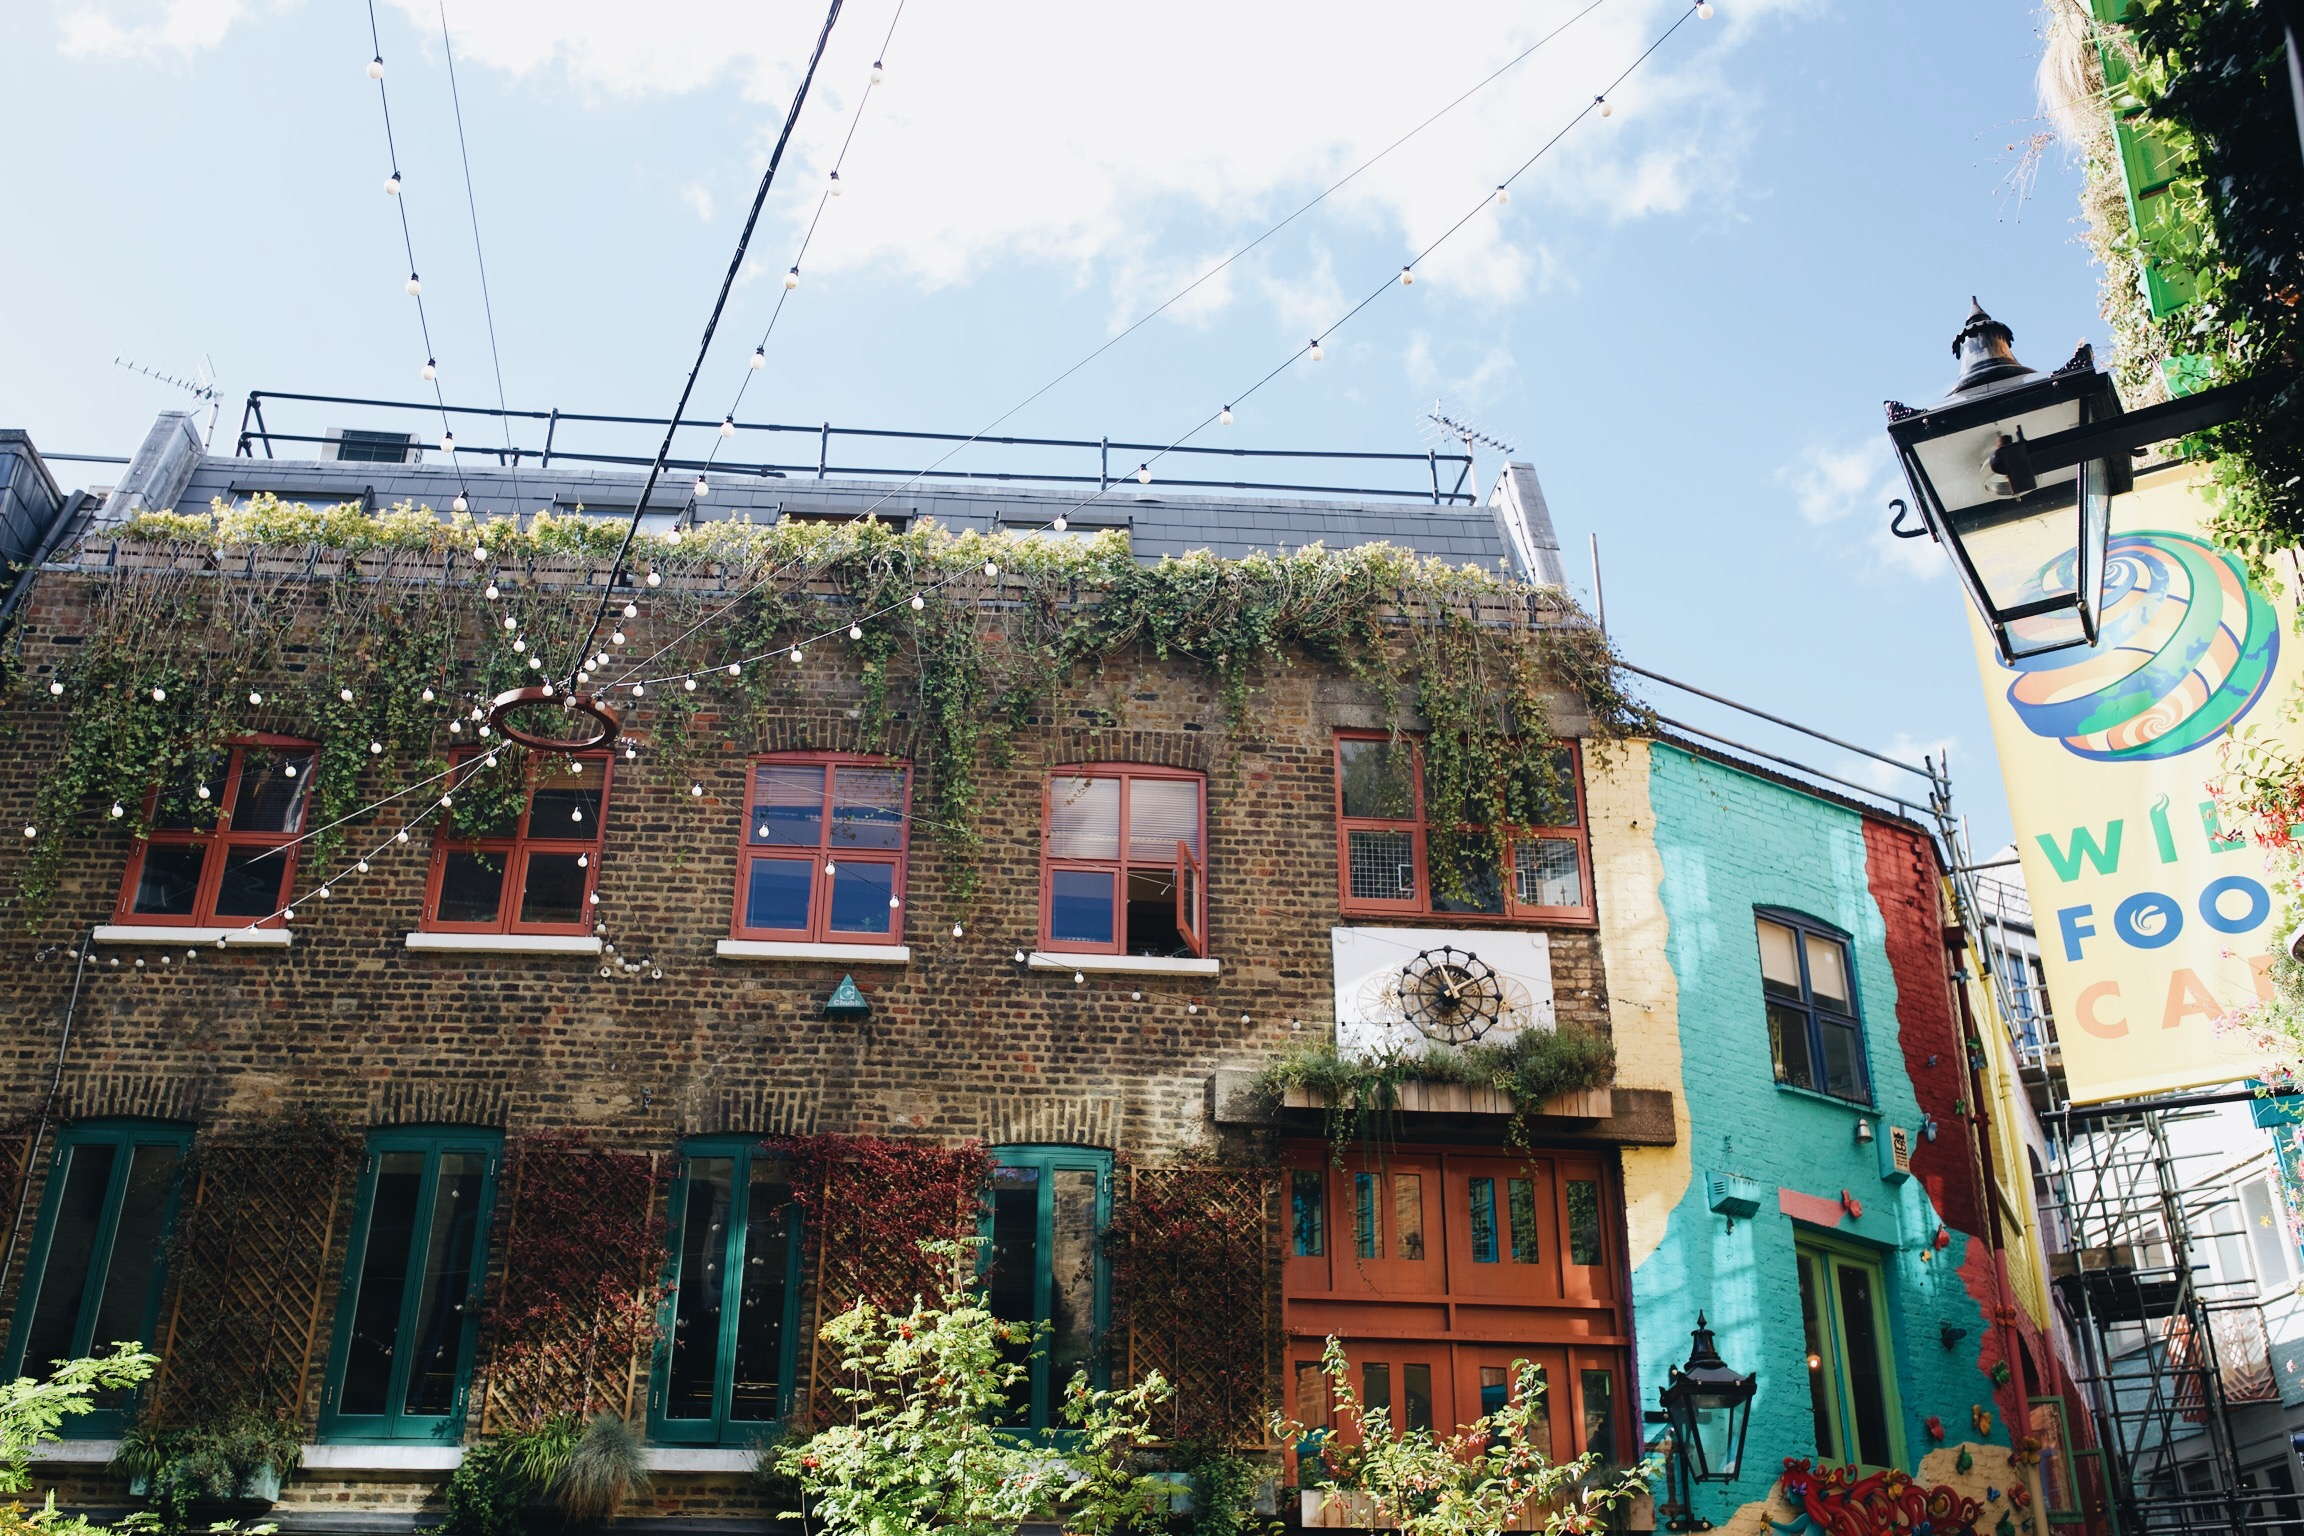 nealsyard-london-covent-garden.JPG